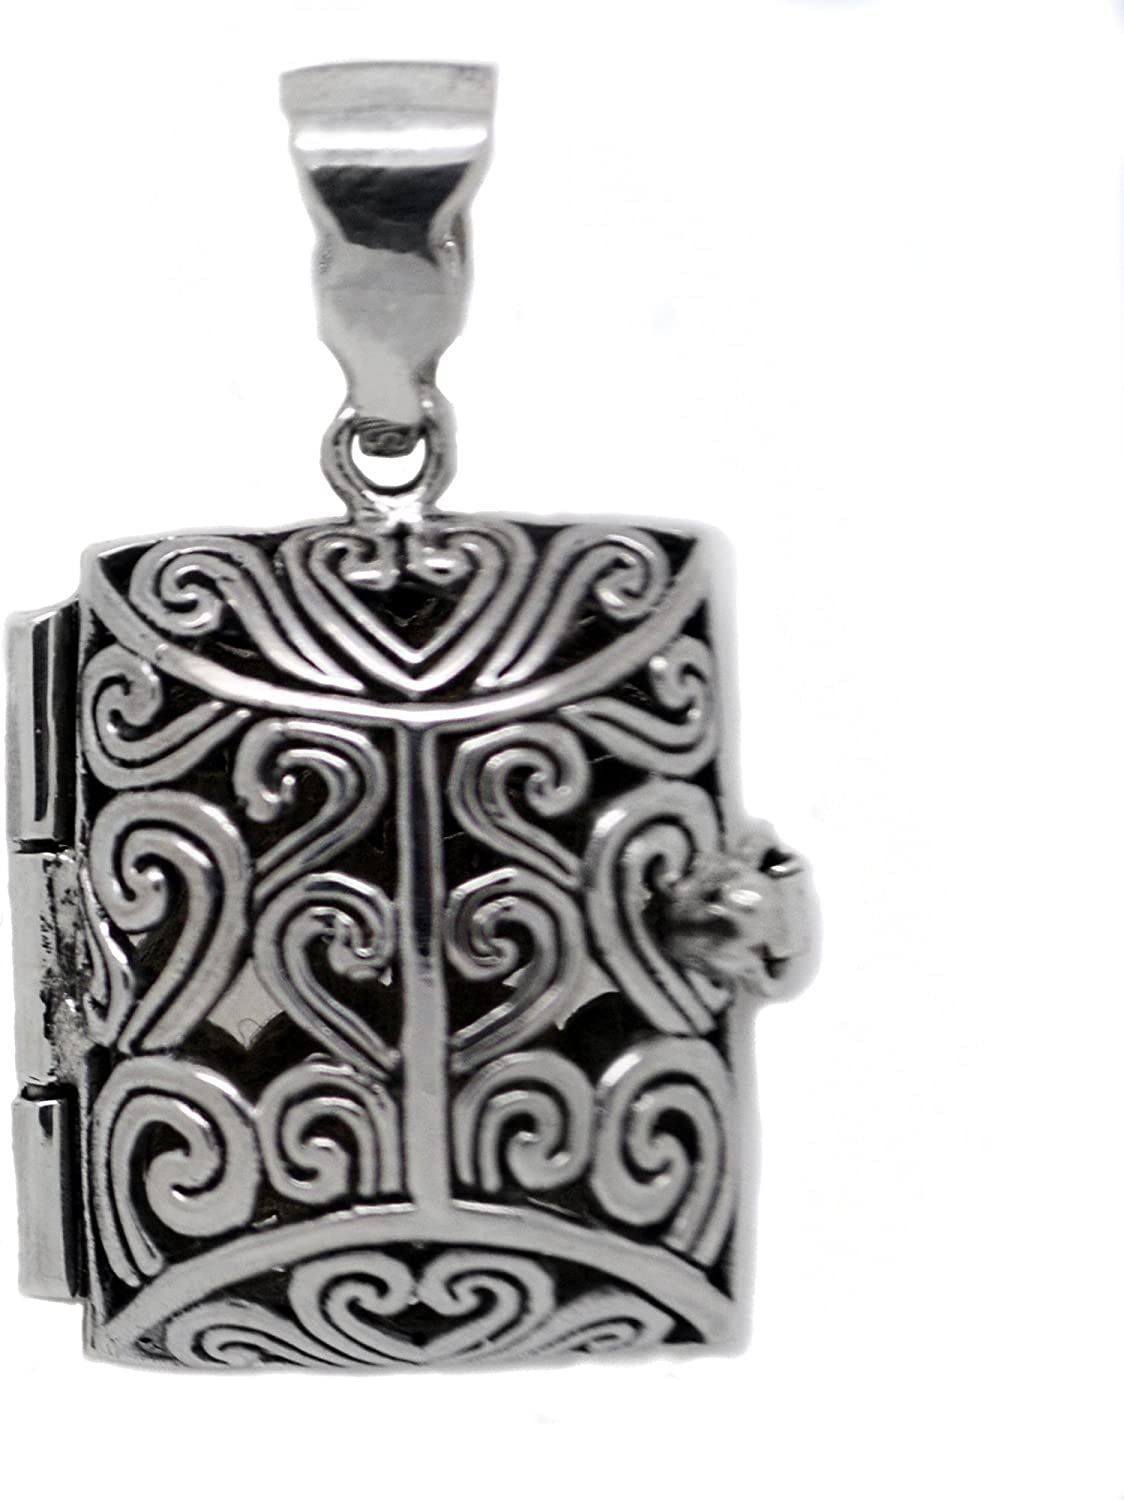 Antique Bronze or Silver Celtic Filigree Locket with 12 wool felt pads-Aromatherapy Necklace Essential Oil Diffuser Necklace